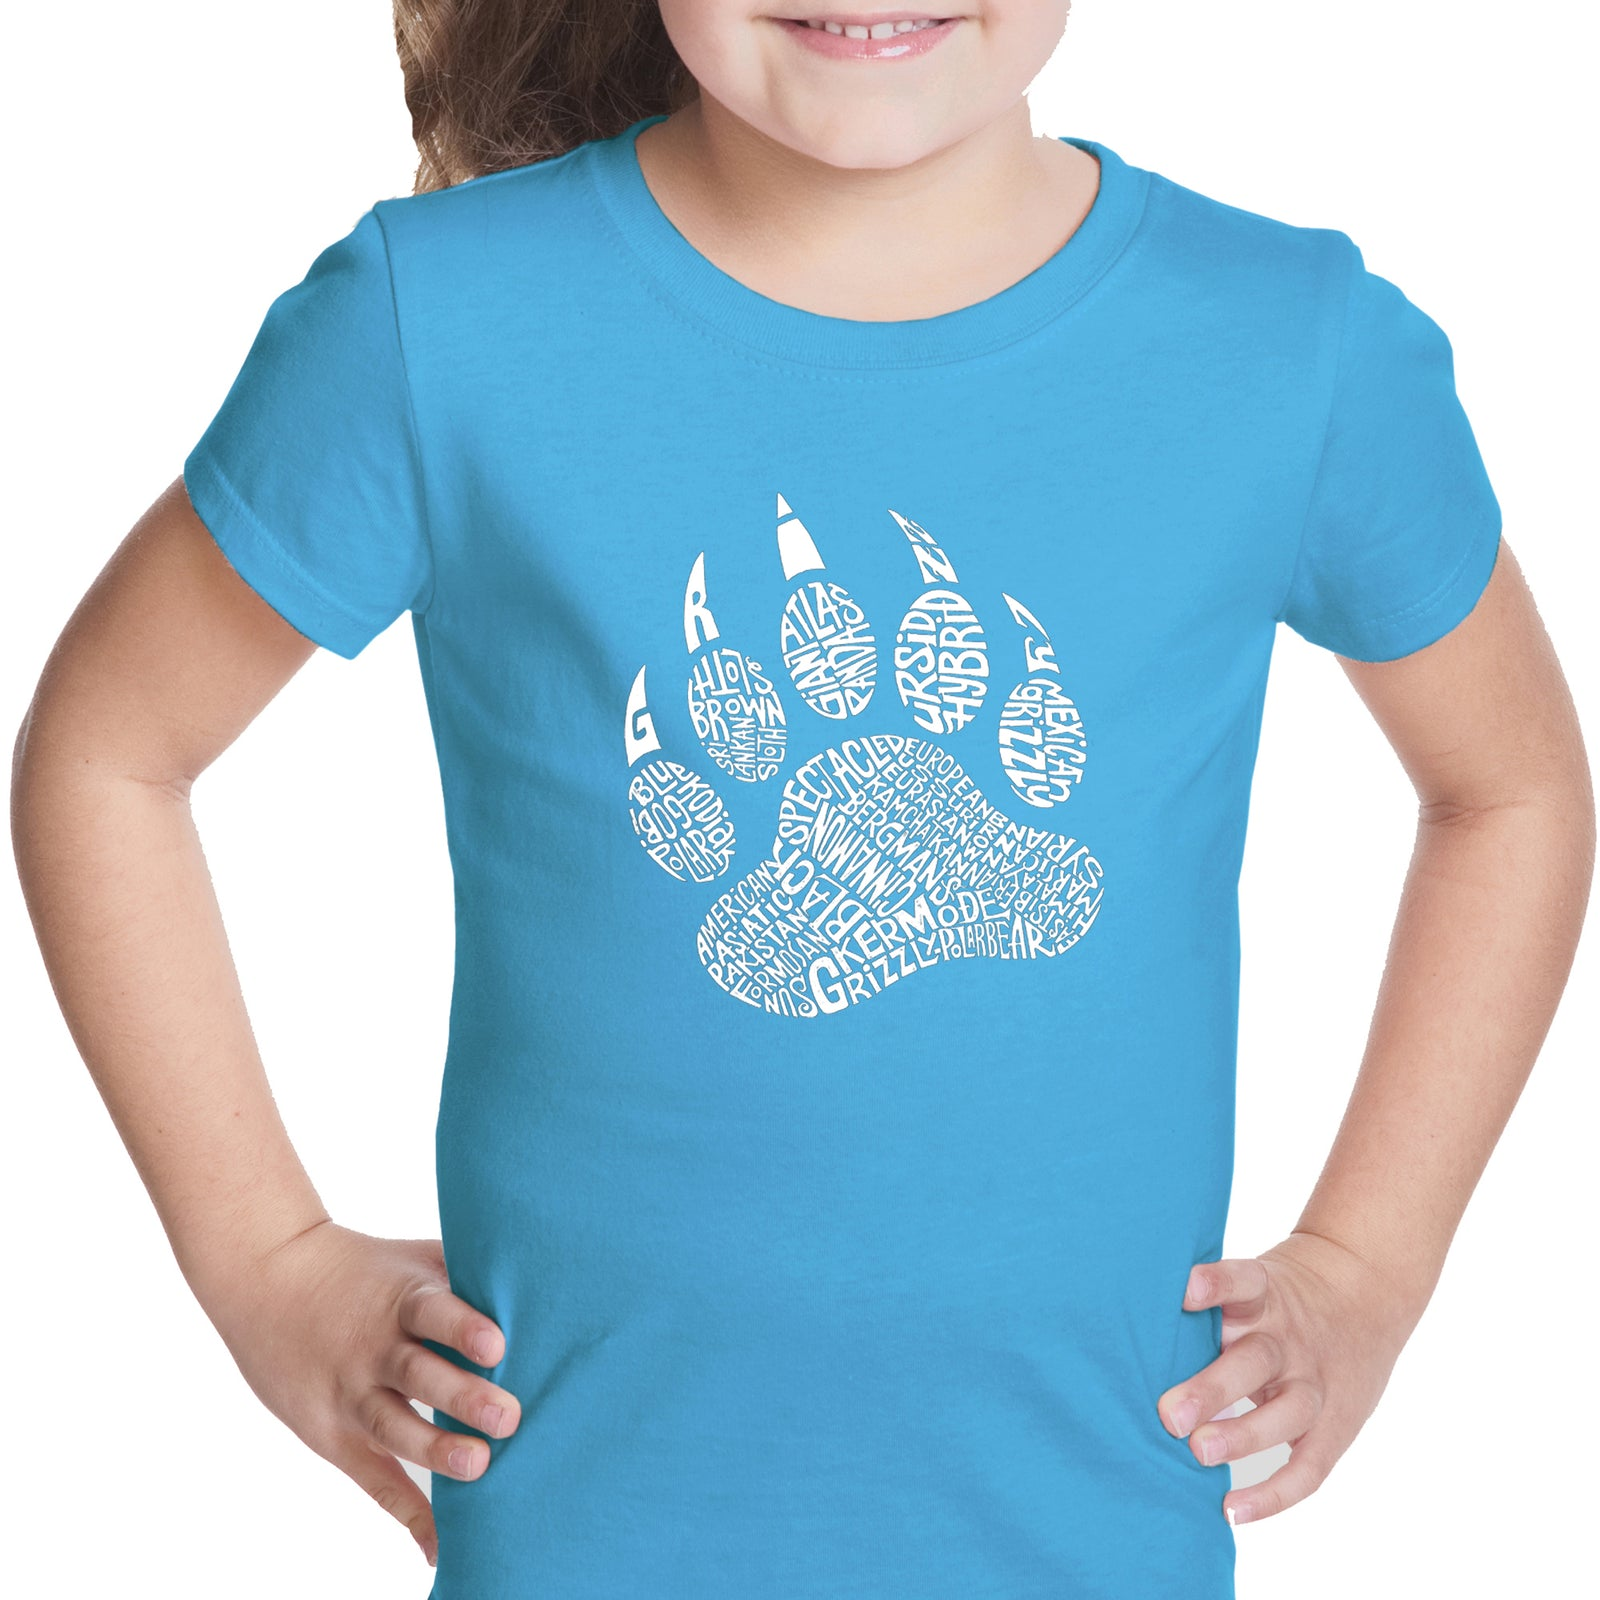 Girl's Word Art T-shirt - Types of Bears